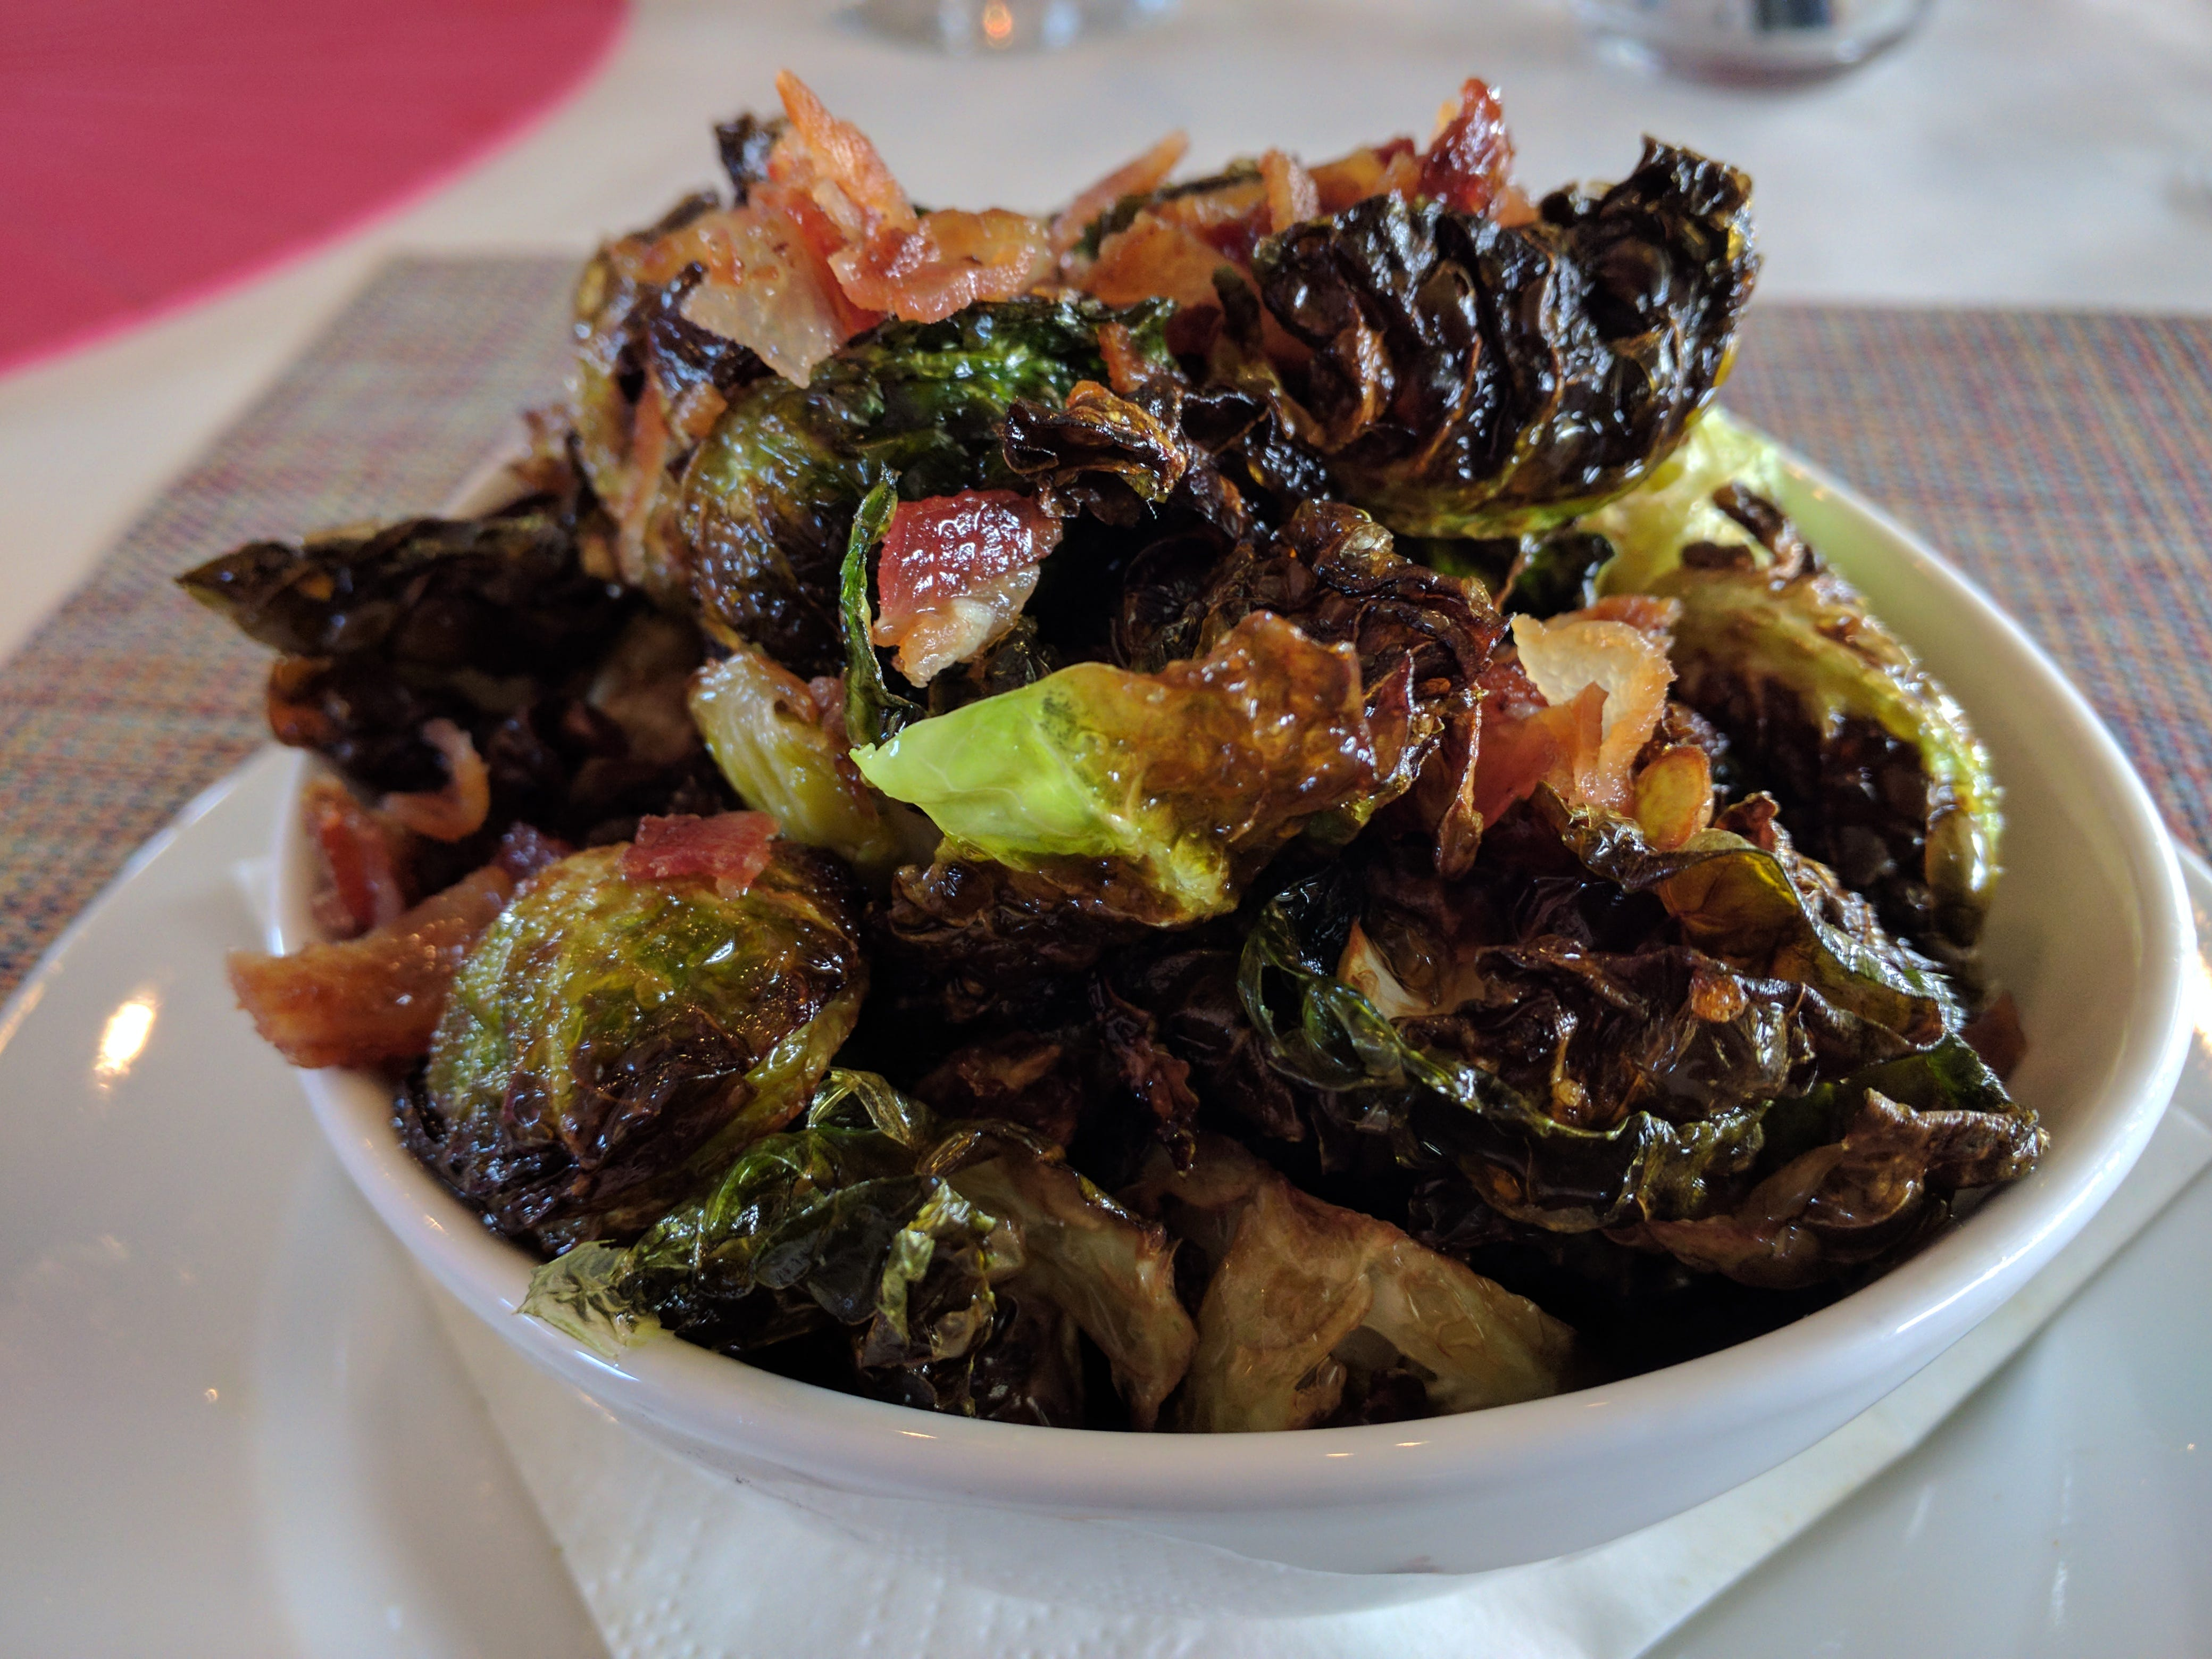 A bowl of crispy, toothsome Brussel sprouts is not to be missed at Counter Culture in Vero Beach.